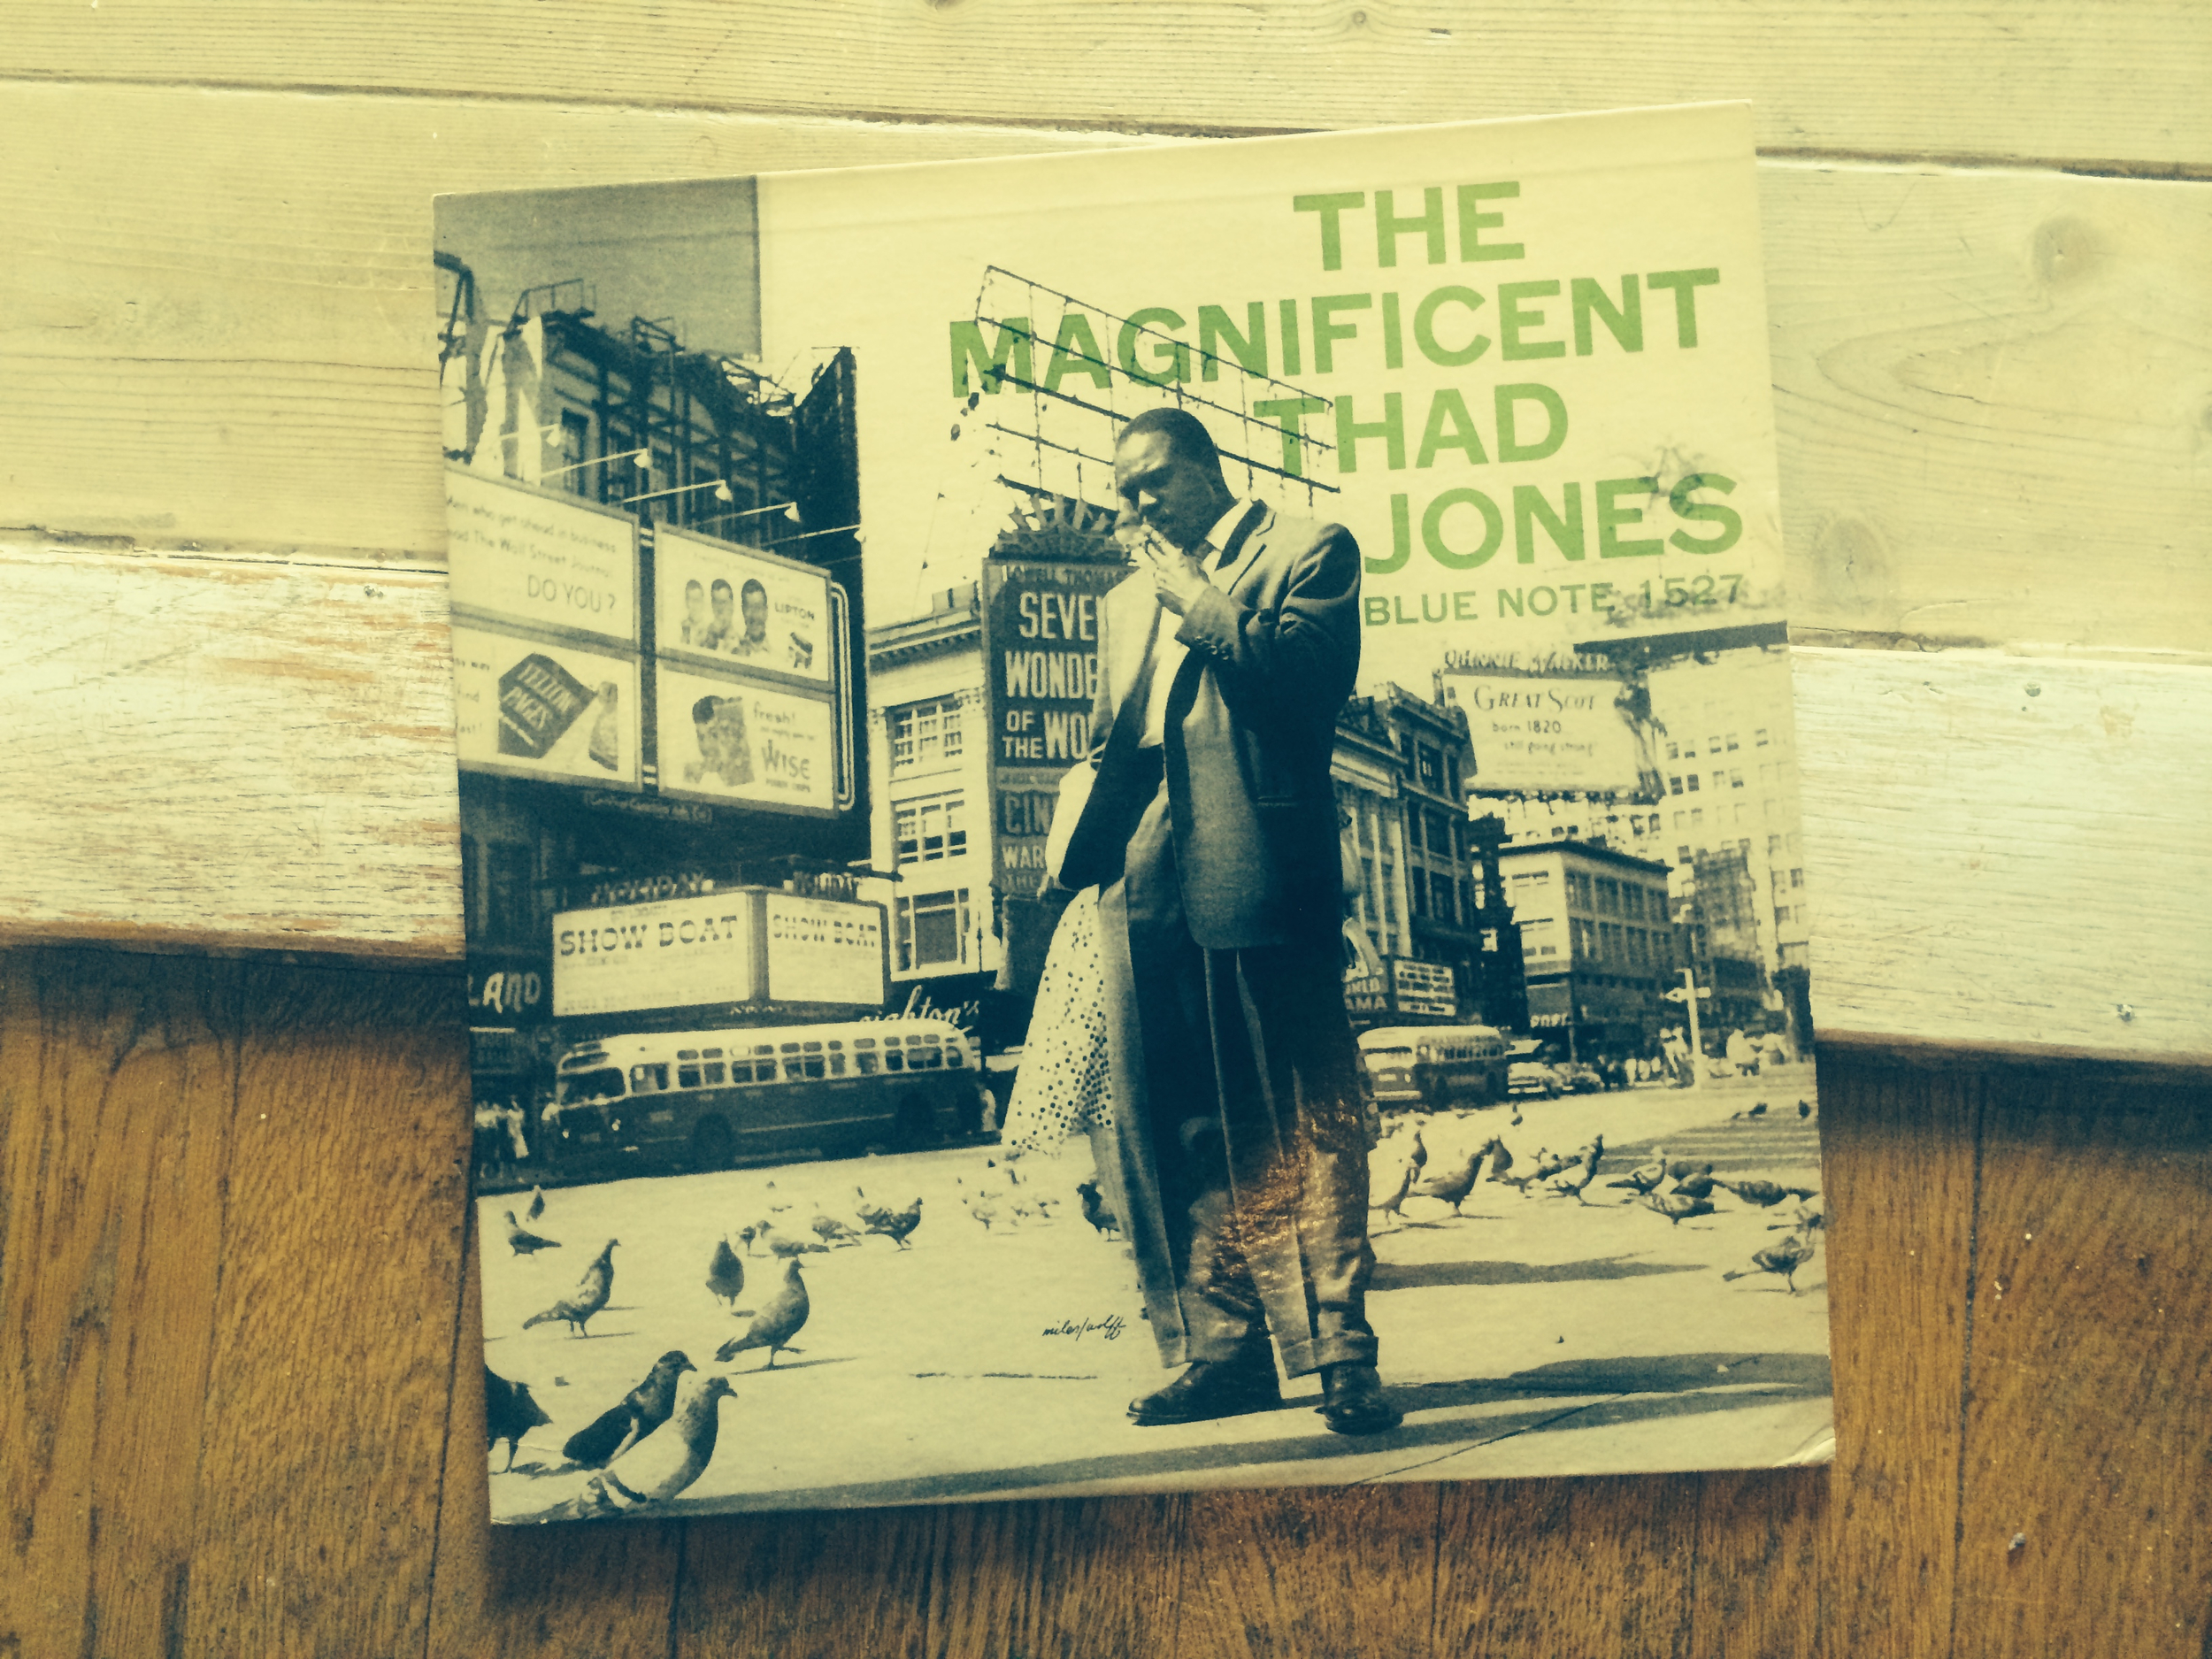 The Magnificent Thad Jones on Blue Note 1527